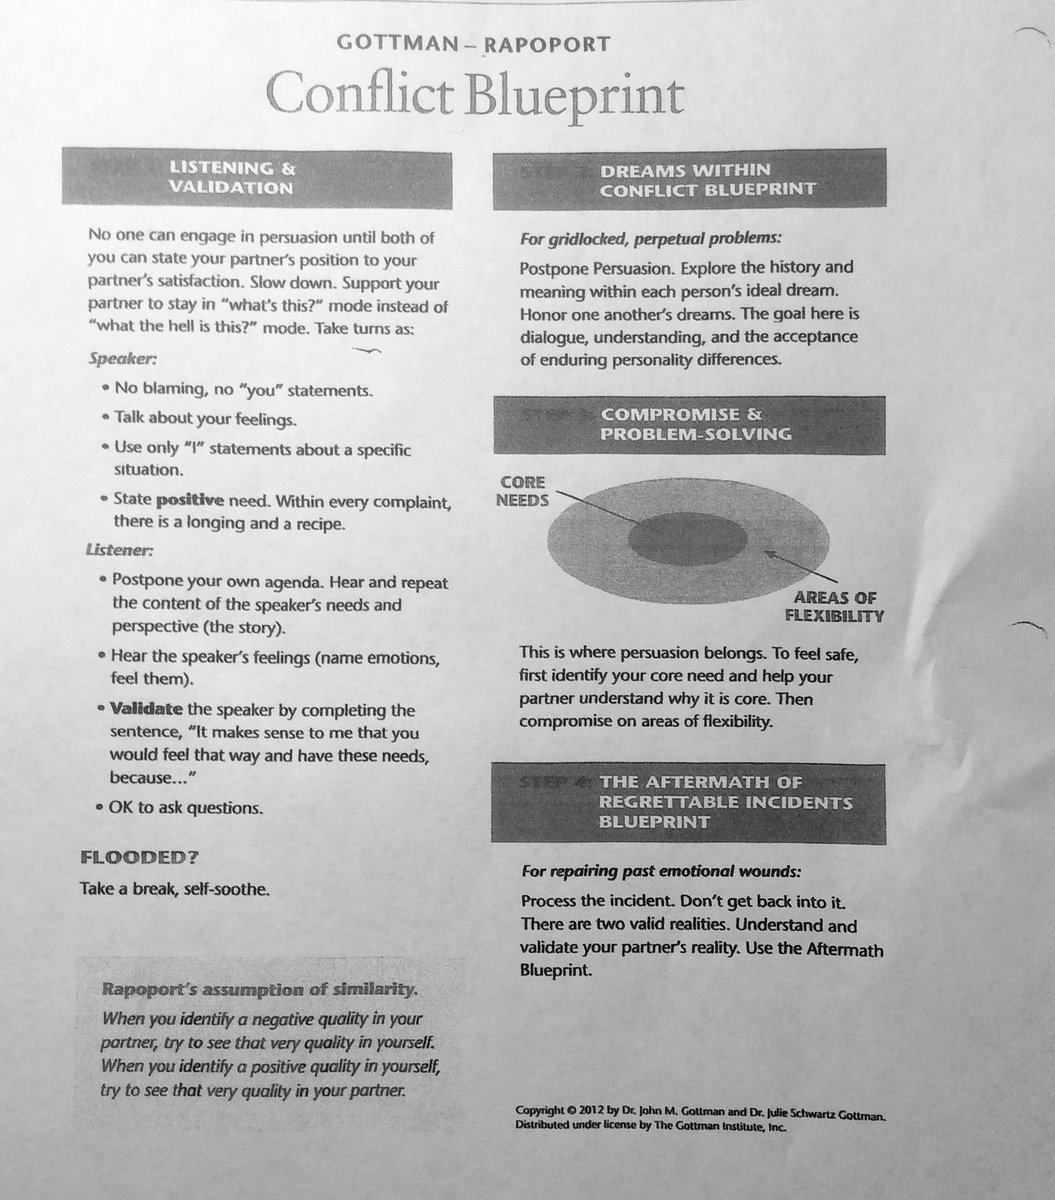 Maile giles lmft on twitter the conflict blueprint has been one maile giles lmft on twitter the conflict blueprint has been one of the most helpful tools working with couples thank you gottman marriage malvernweather Image collections